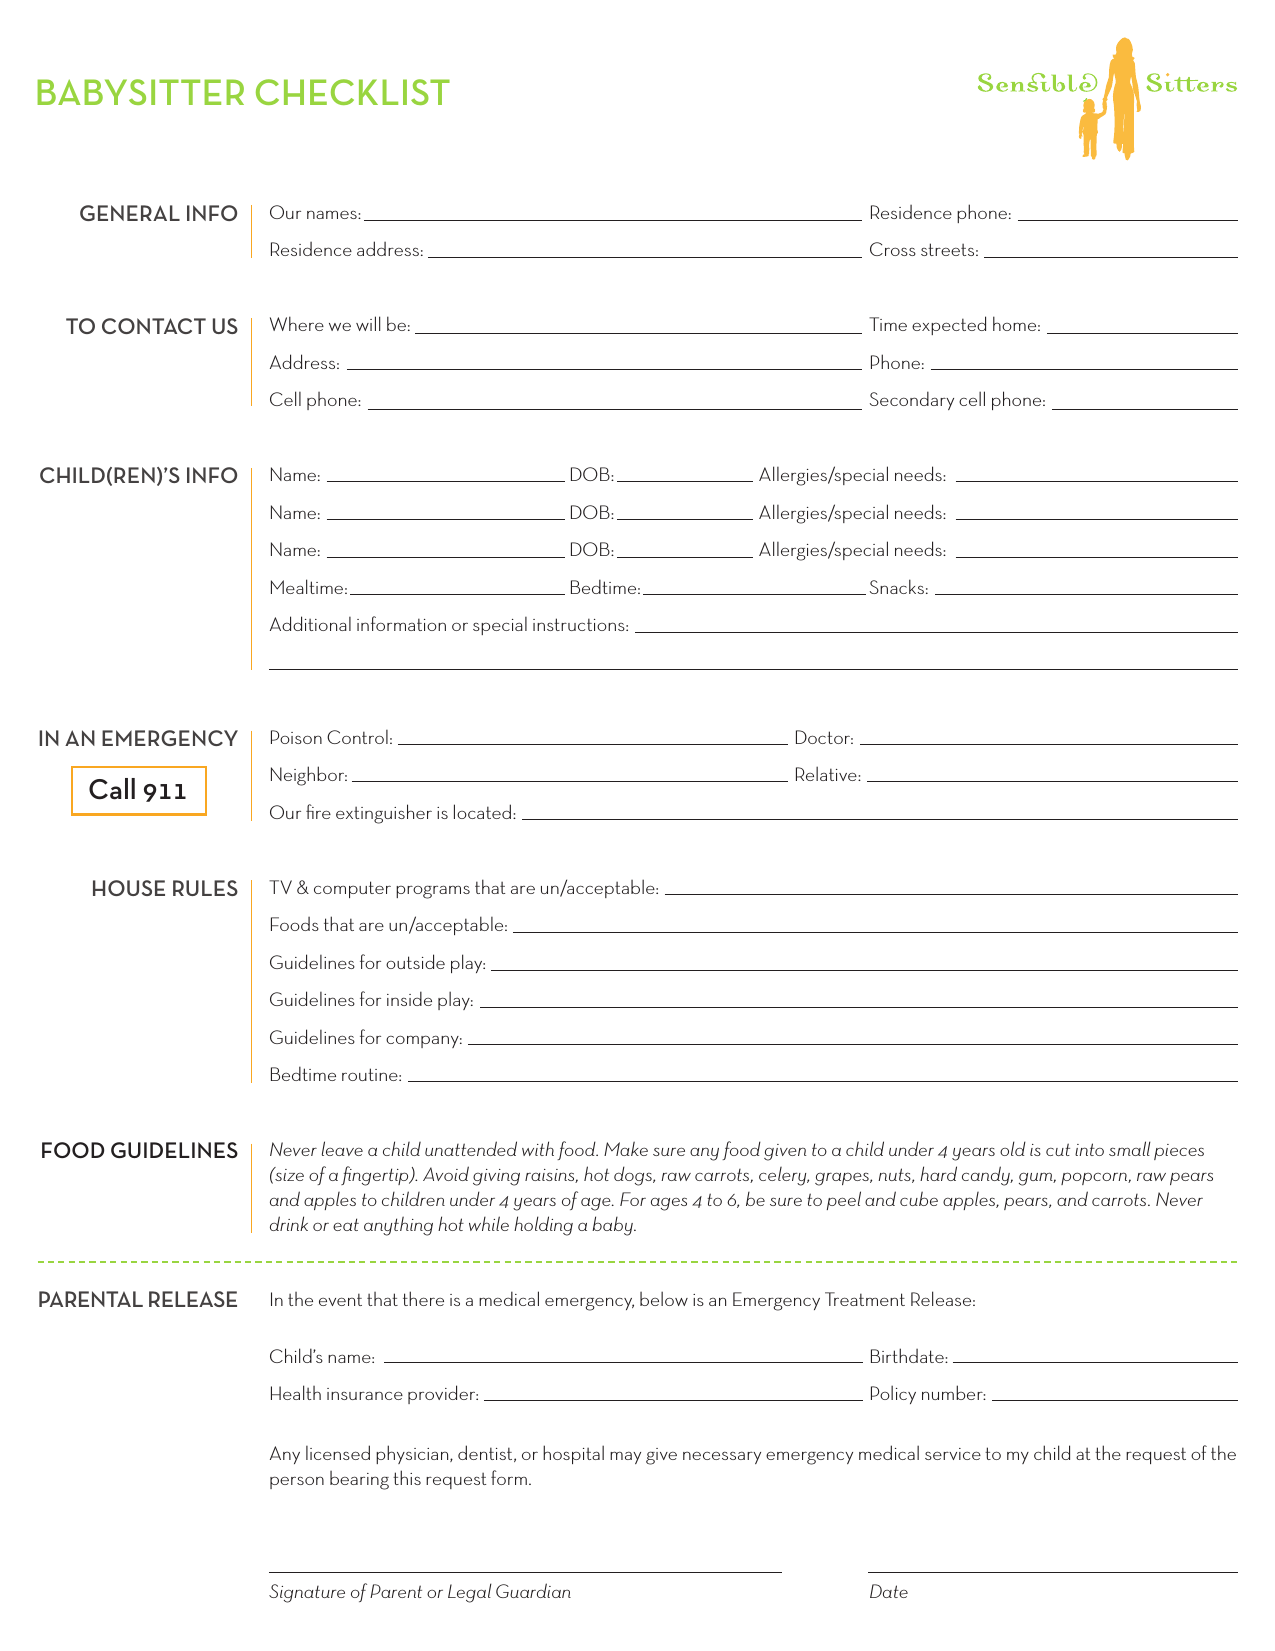 Download Babysitter Checklist Template